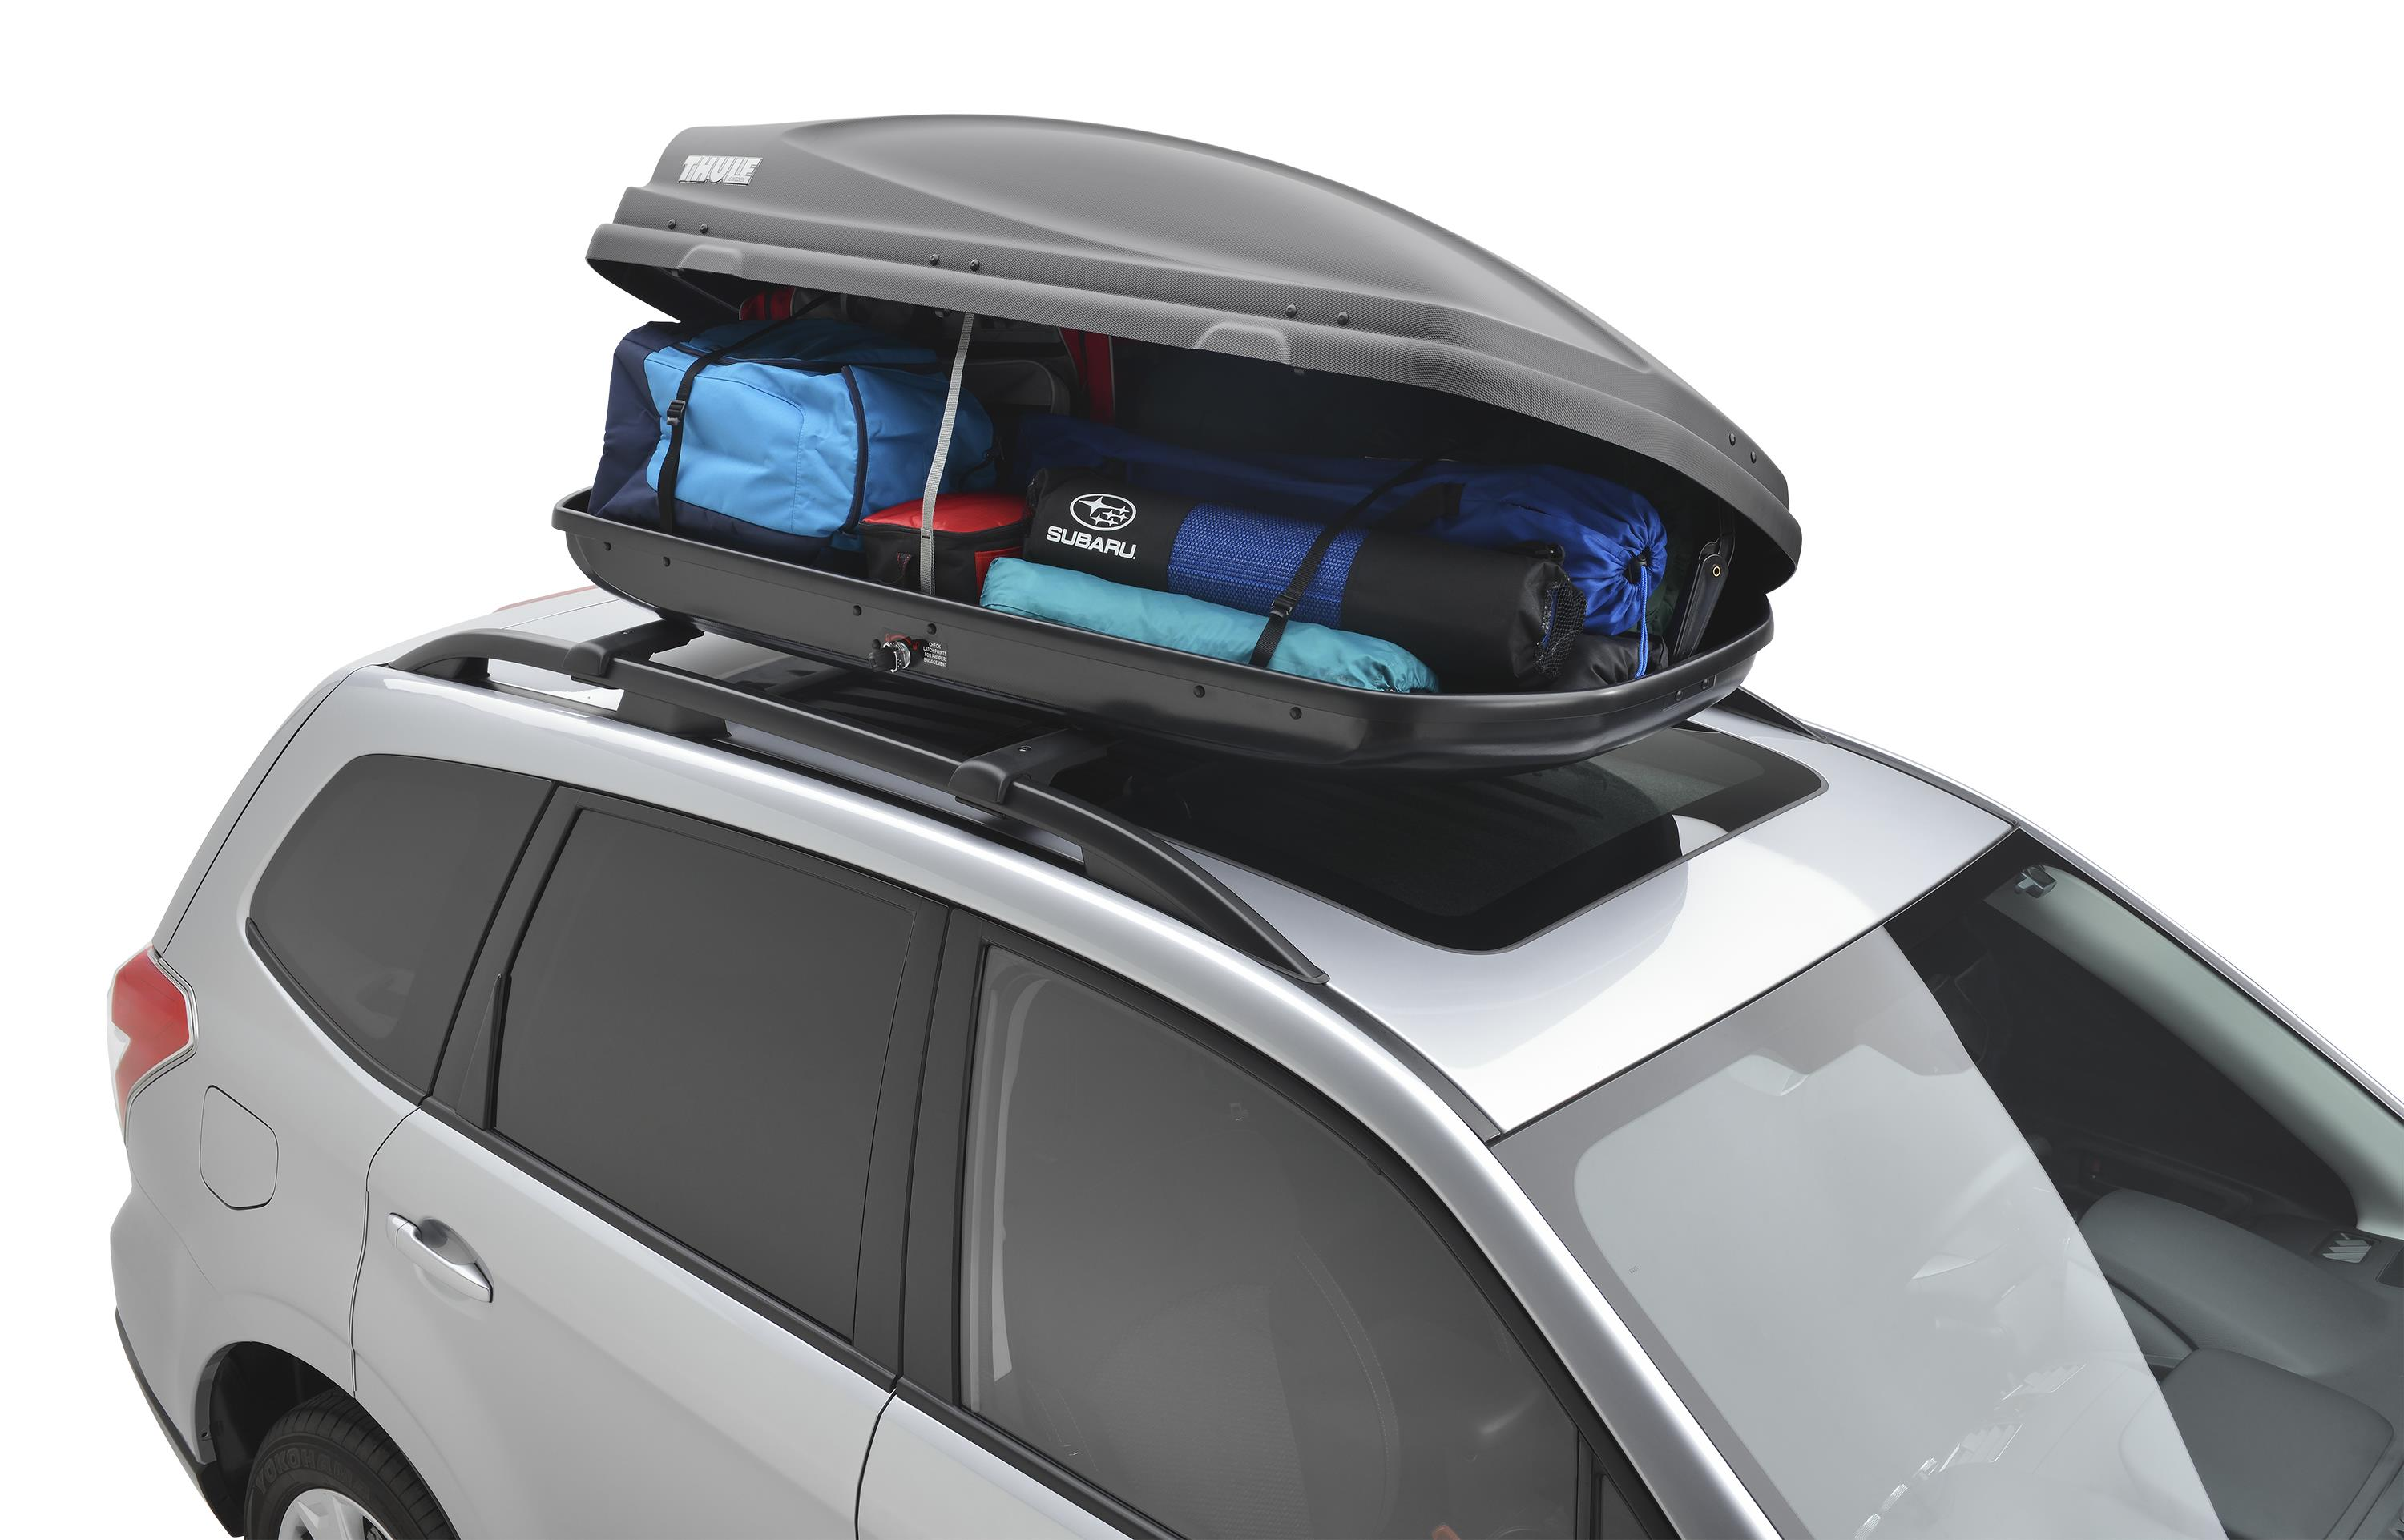 2016 subaru outback roof cargo carrier provides side for Department of motor vehicles glendale ca